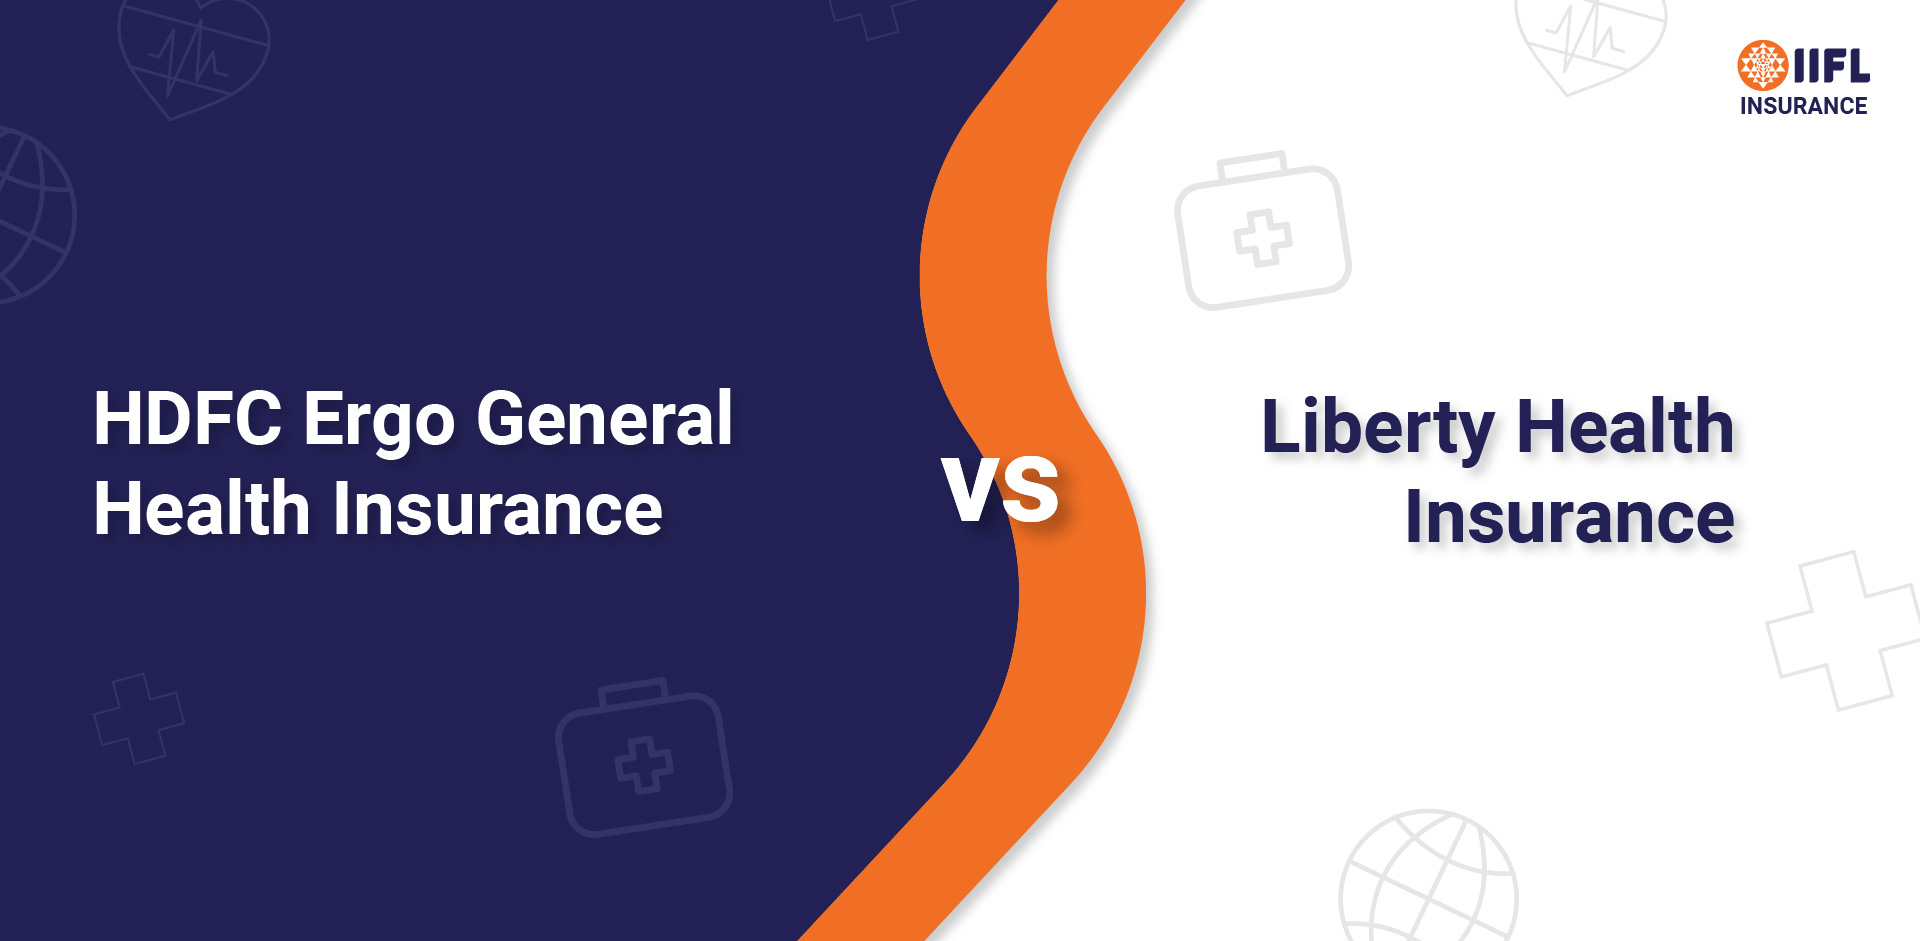 hdfc-ergo-general-health-vs-liberty-health-insurance